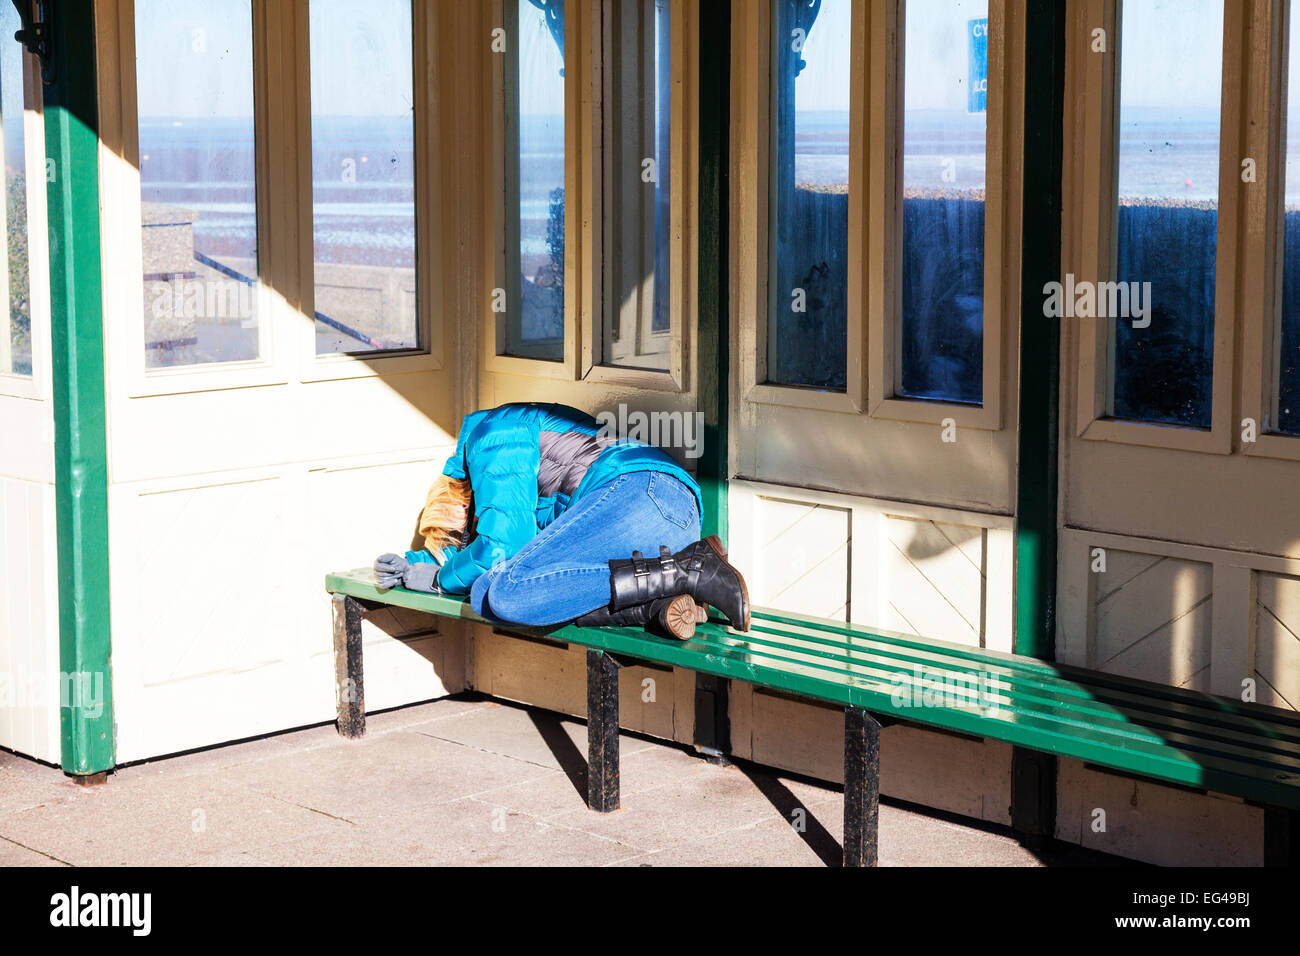 Girl sleeping rough vagrant tramp homeless person broken Britain desperate bus shelter Cleethorpes town lincolnshire - Stock Image